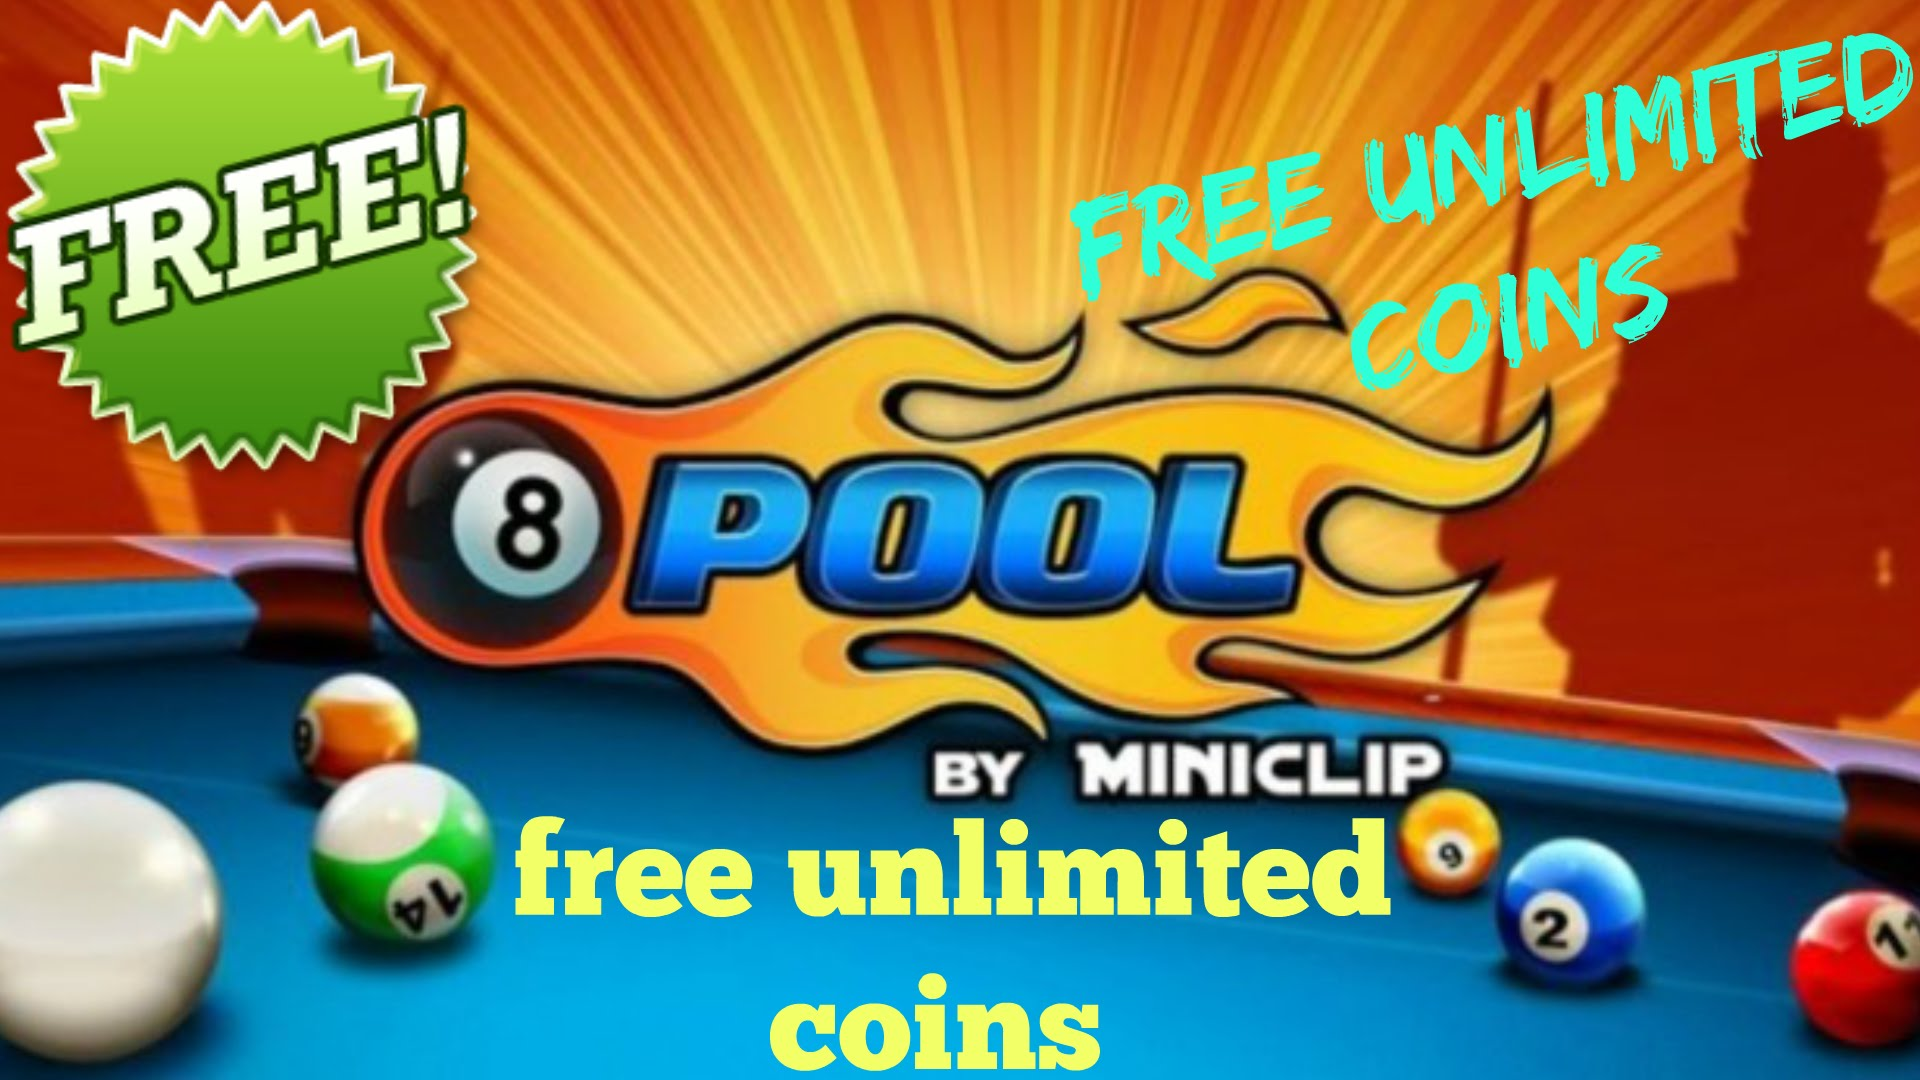 【8BALLHACK.ORG 8 BALL POOL】 Cash and Coins FOR ANDROID IOS PC PLAYSTATION | 100% WORKING METHOD | GET UNLIMITED RESOURCES NOW